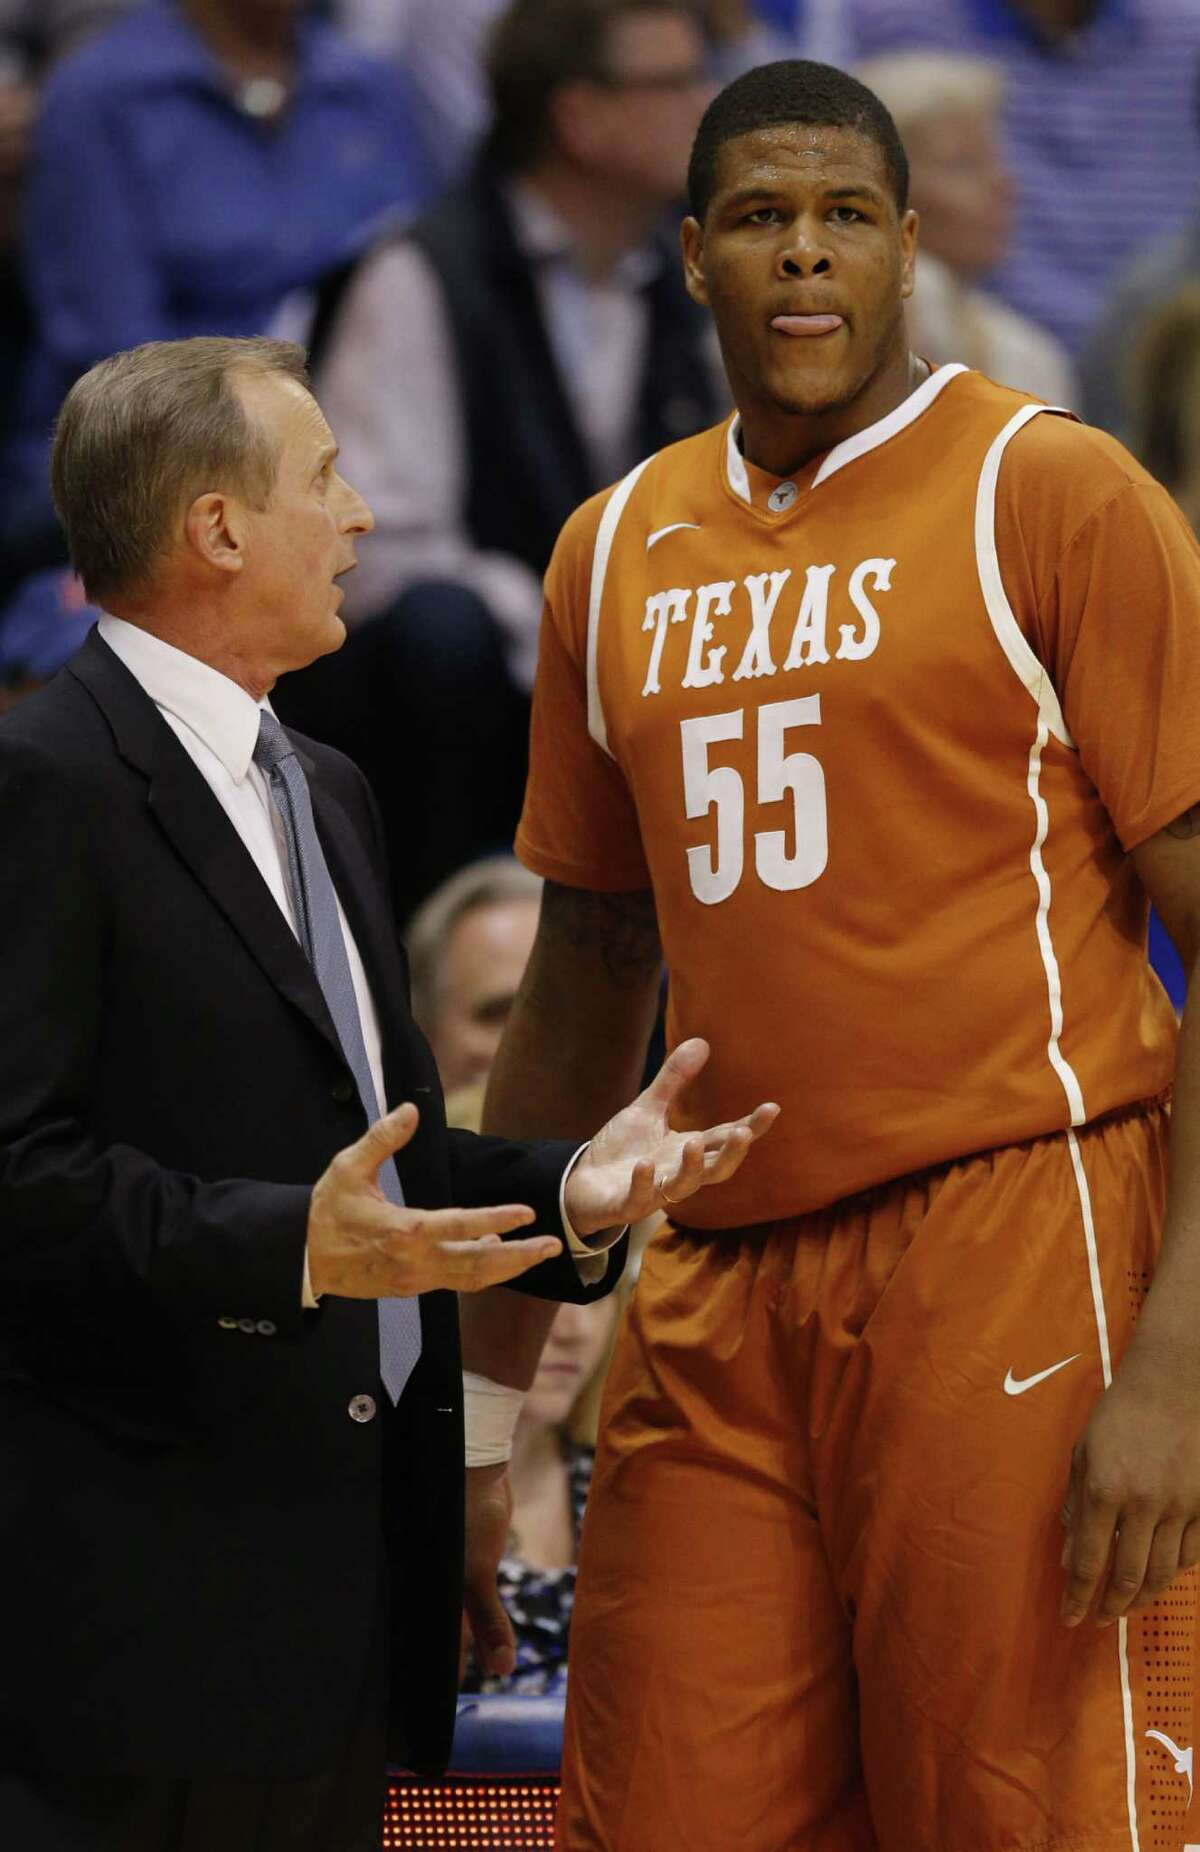 Texas head coach Rick Barnes and center Cameron Ridley (55) during the second half of an NCAA college basketball game against Kansas in Lawrence, Kan., Saturday, Feb. 22, 2014. Kansas defeated Texas 85-54. (AP Photo/Orlin Wagner)